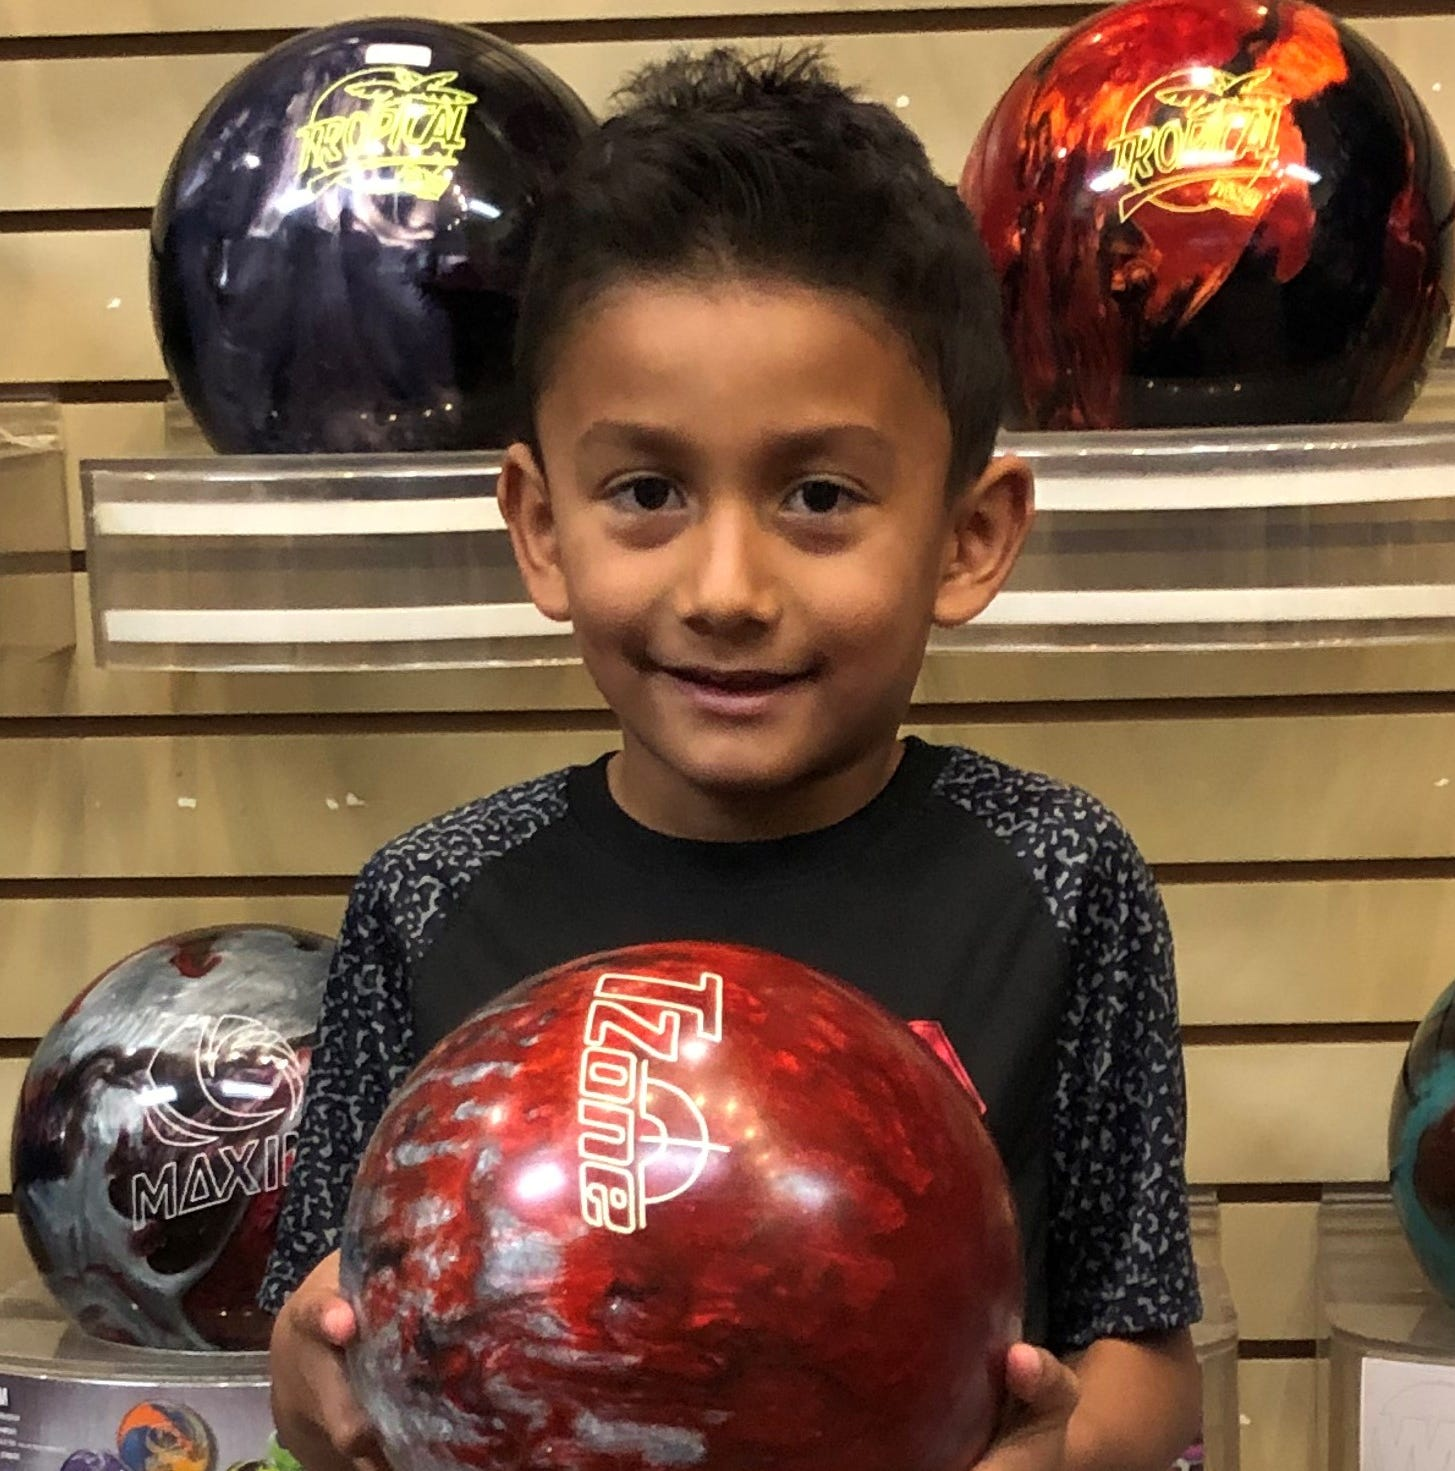 Six-year-old's explosive game turns heads at Virgin River Bowling Center